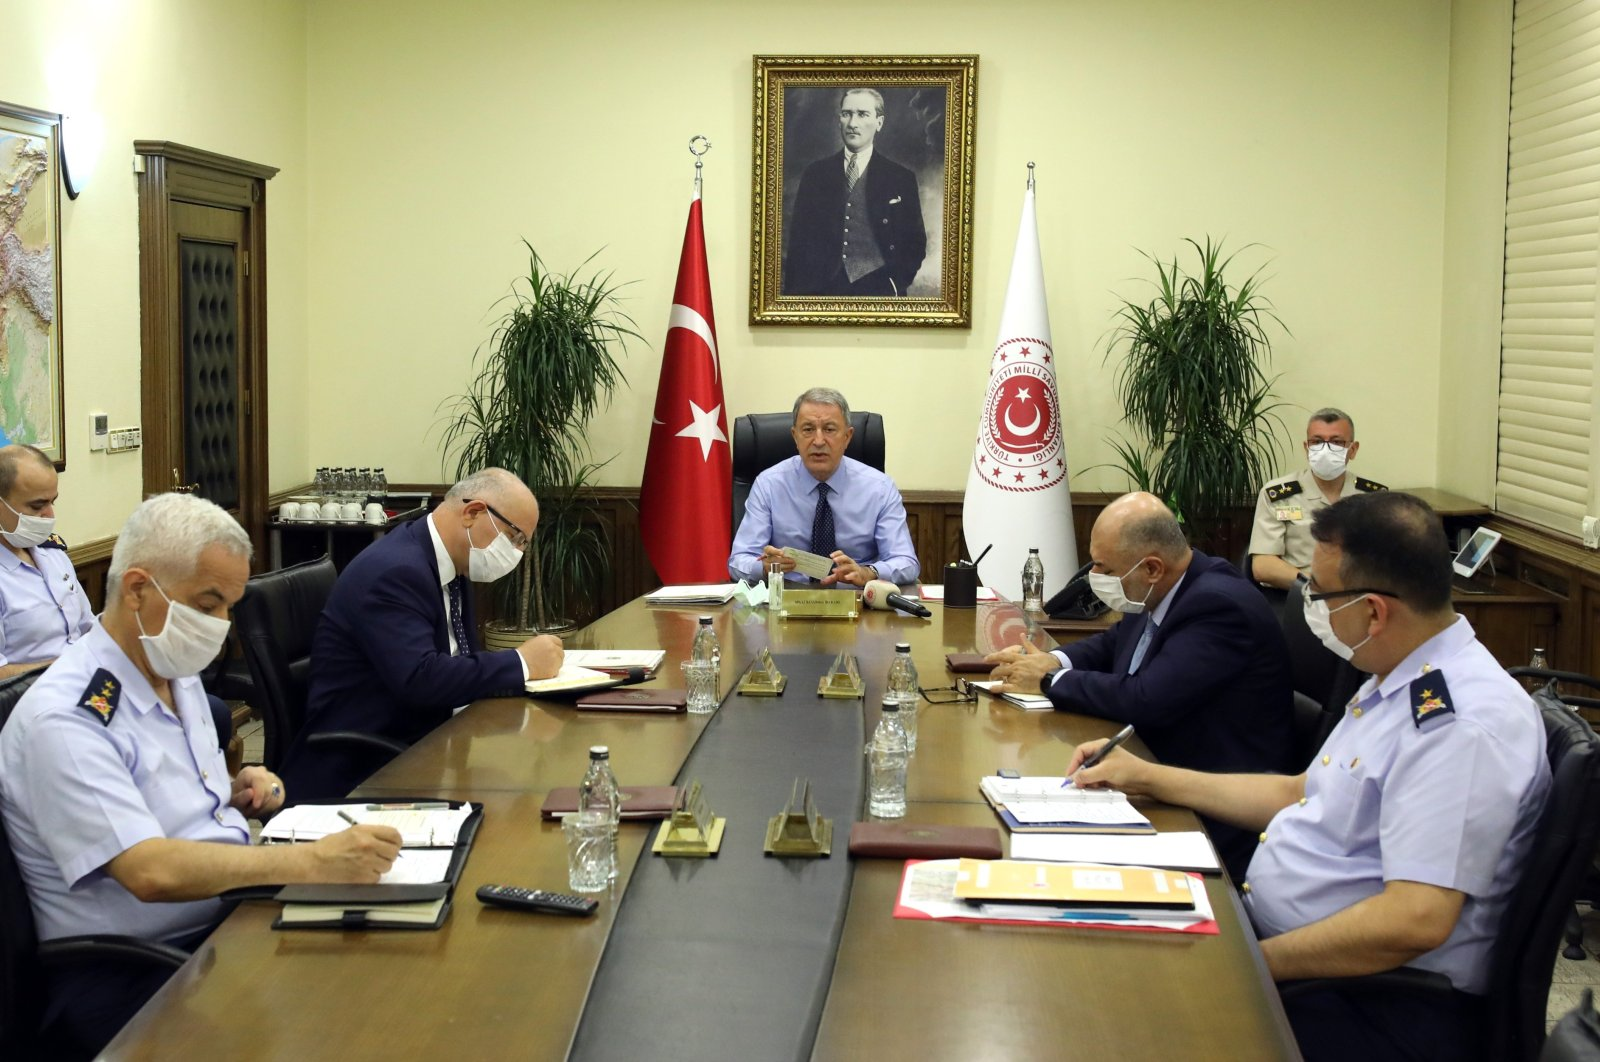 Defense Minister Hulusi Akar attends a meeting with the commanders-in-chief of the Turkish Armed Forces in Ankara, Tuesday, Aug. 11, 2020 (DHA Photo)